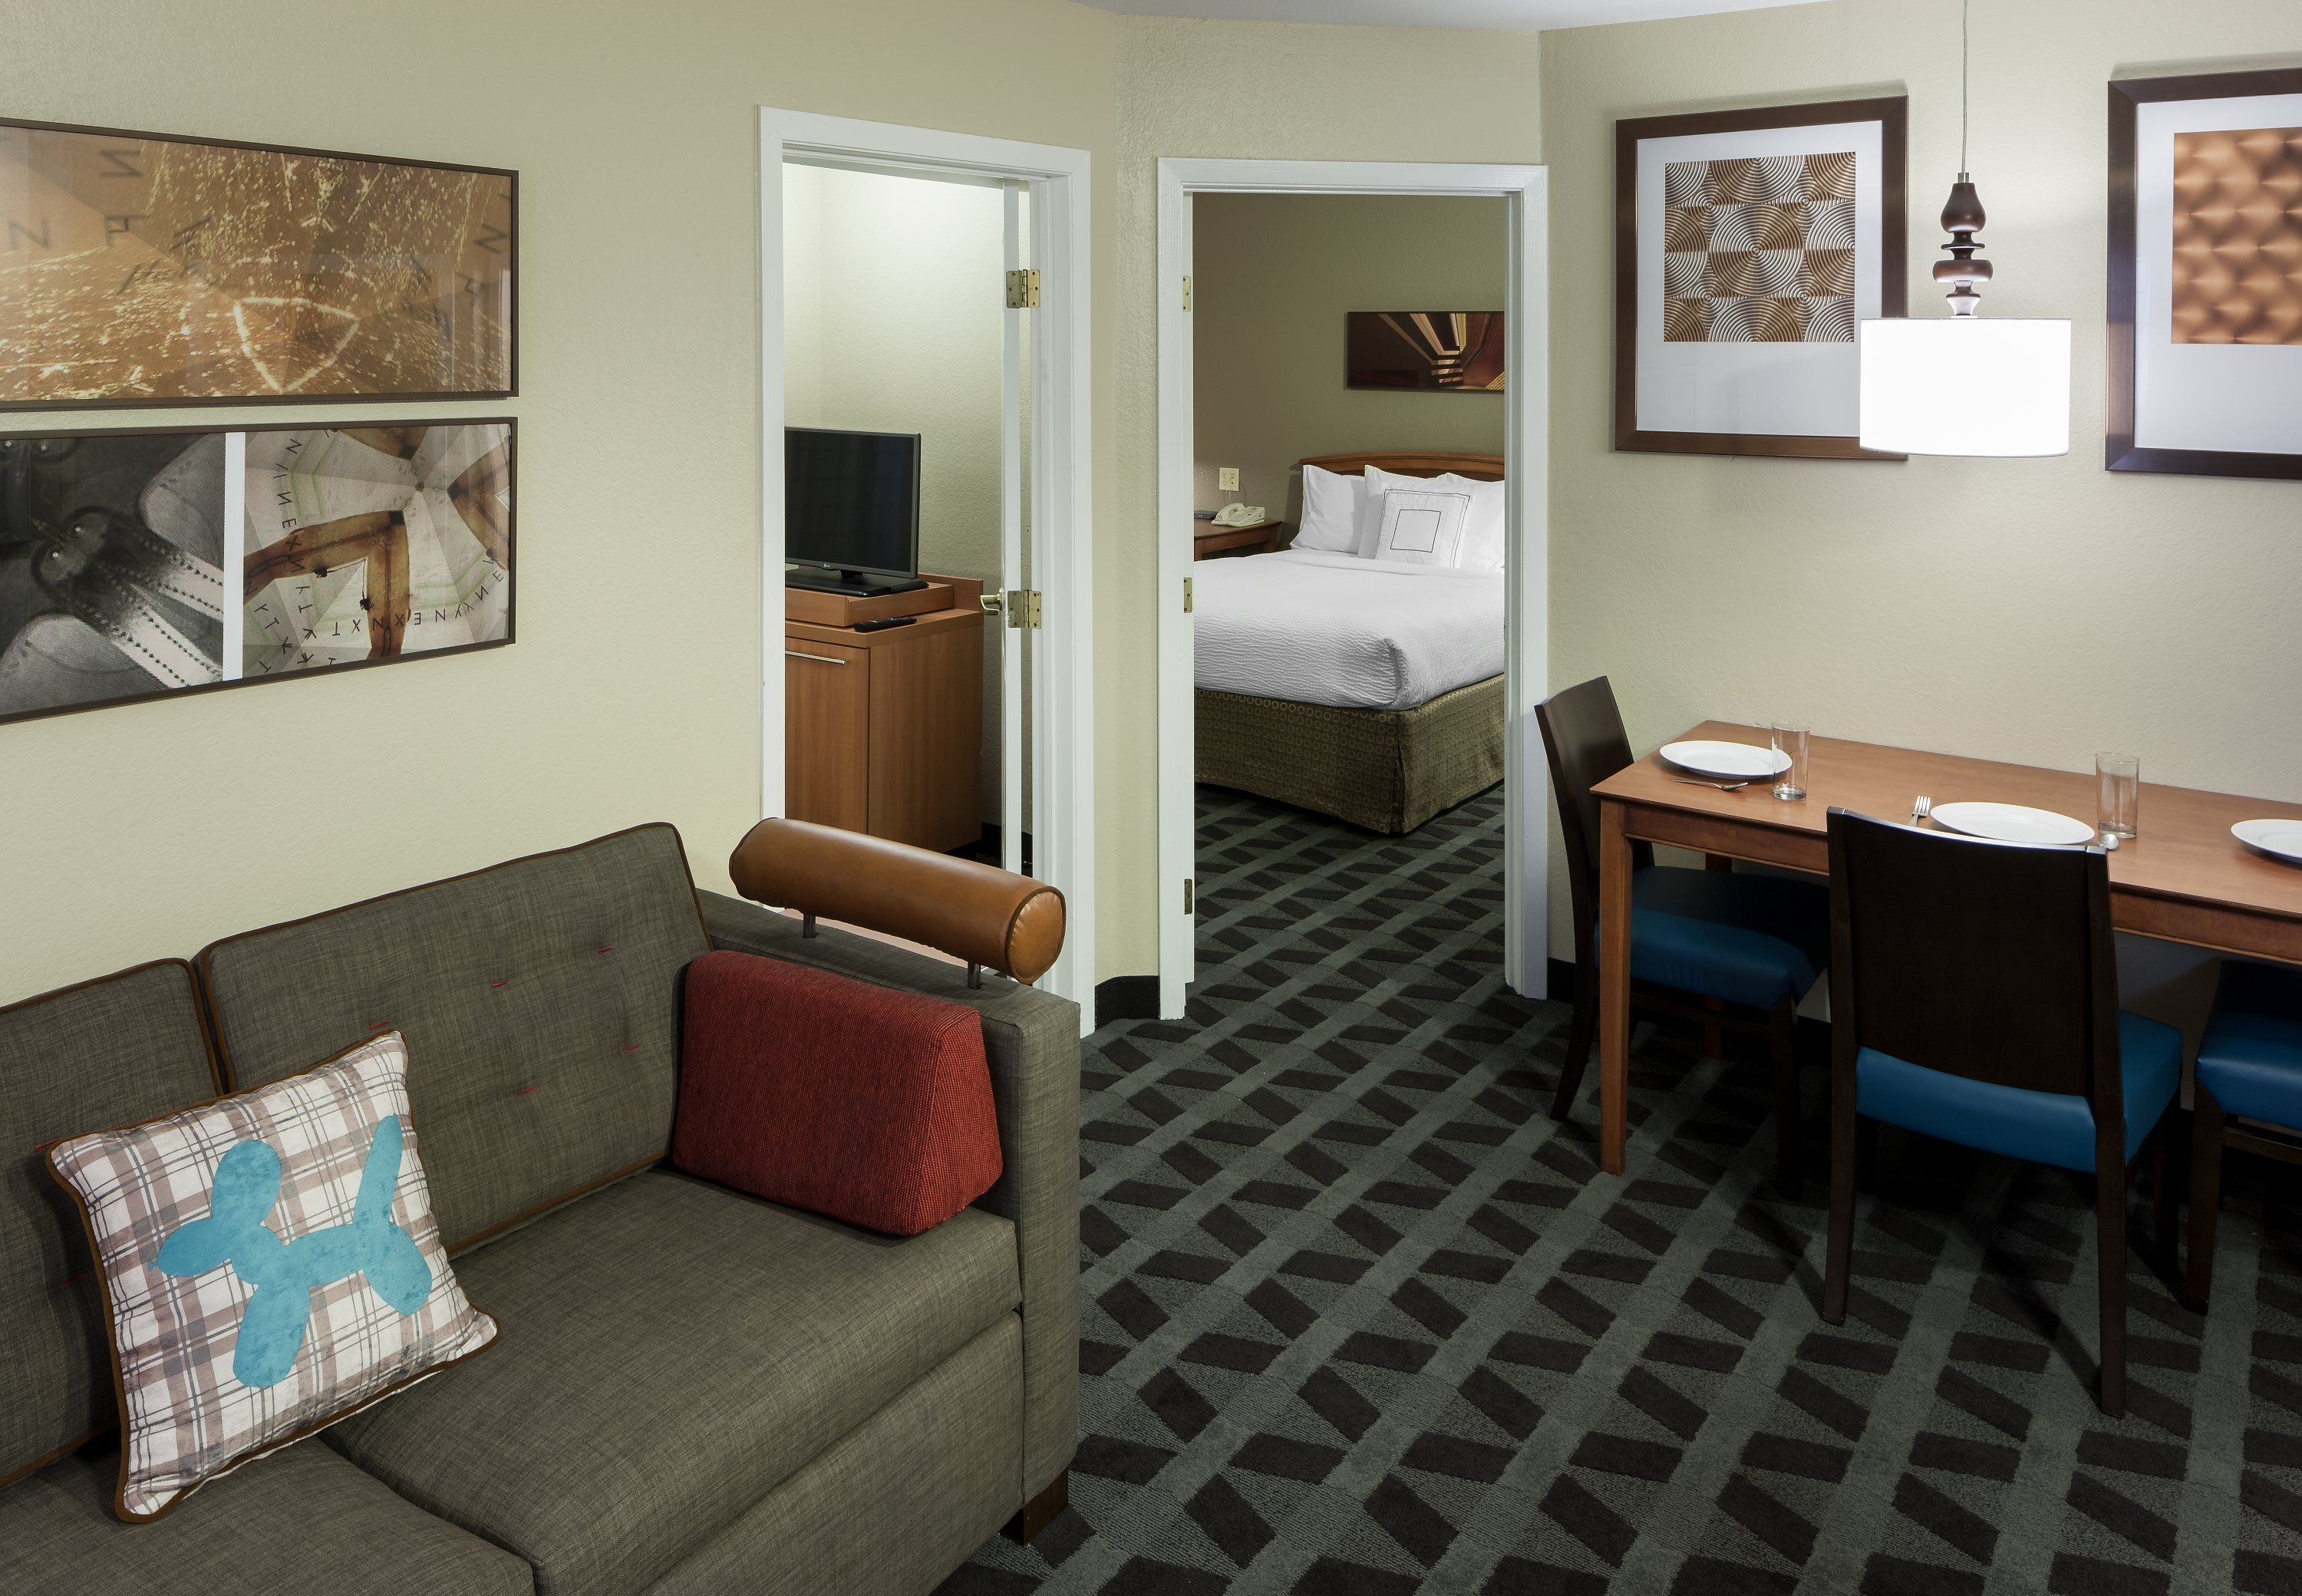 Best Hotels Near Six Flags In Arlington Tx Towneplace Suites With Pictures